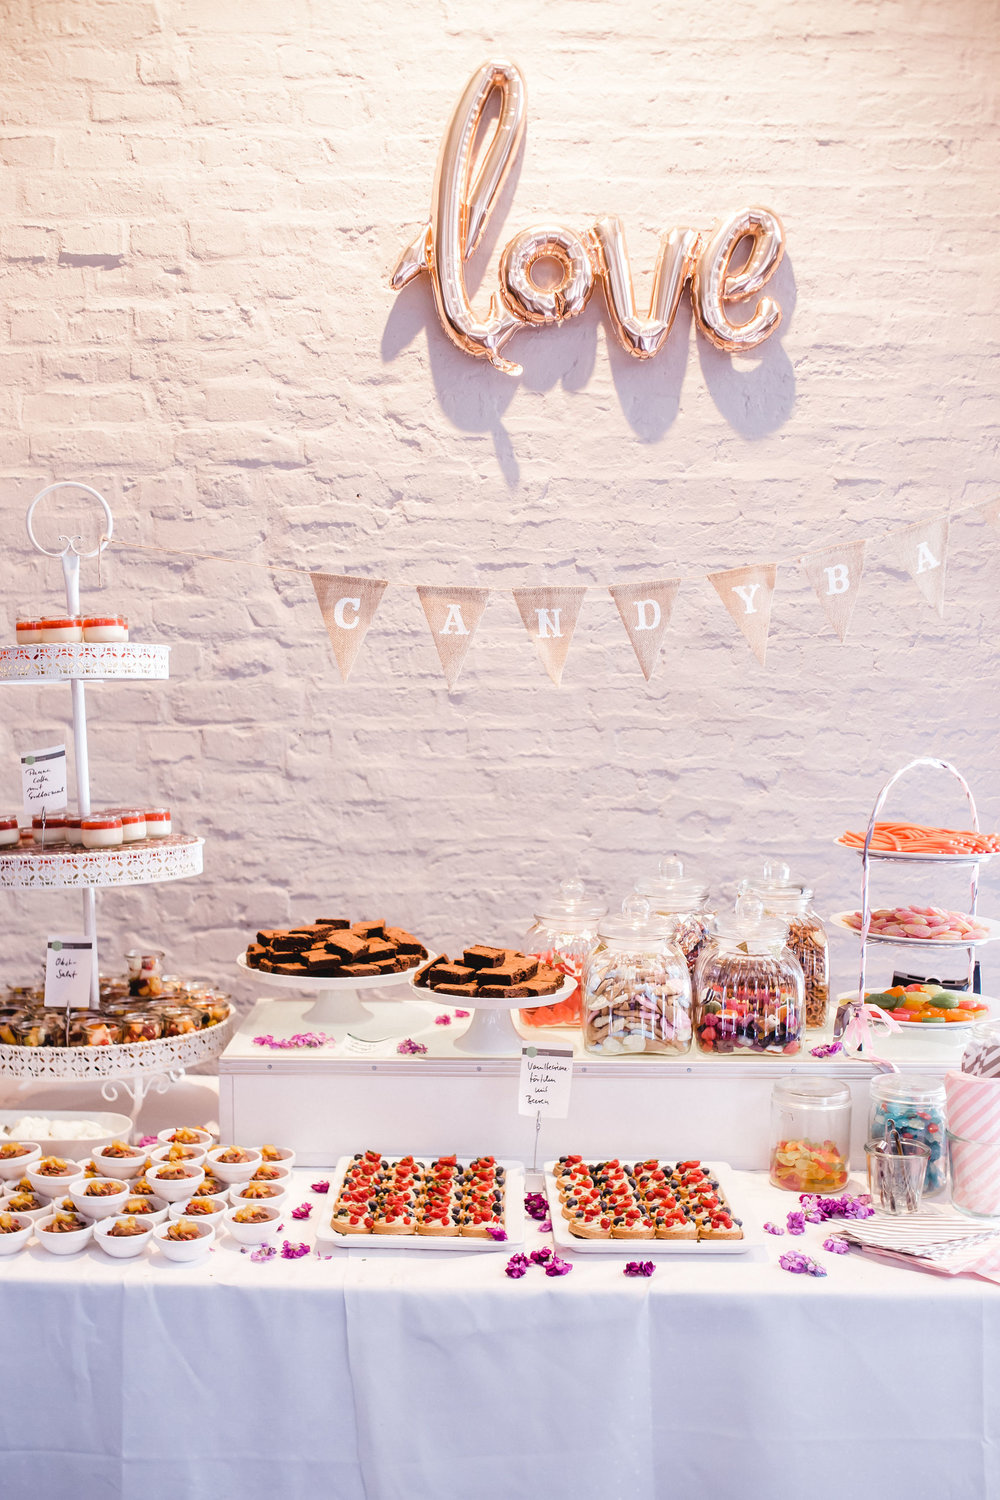 Events Beyond Event Planning   NYC Candy Bar   Sweets and Treats Display   Candy Bar   Dessert Tables   Candy Buffet   Cake   Dessert   Candy  Wedding Favors   Love Sweet Love   Courtney Kern  NYC Boutique Event Planning   Wedding Planning   Event Design   Creative Consulting Firm  